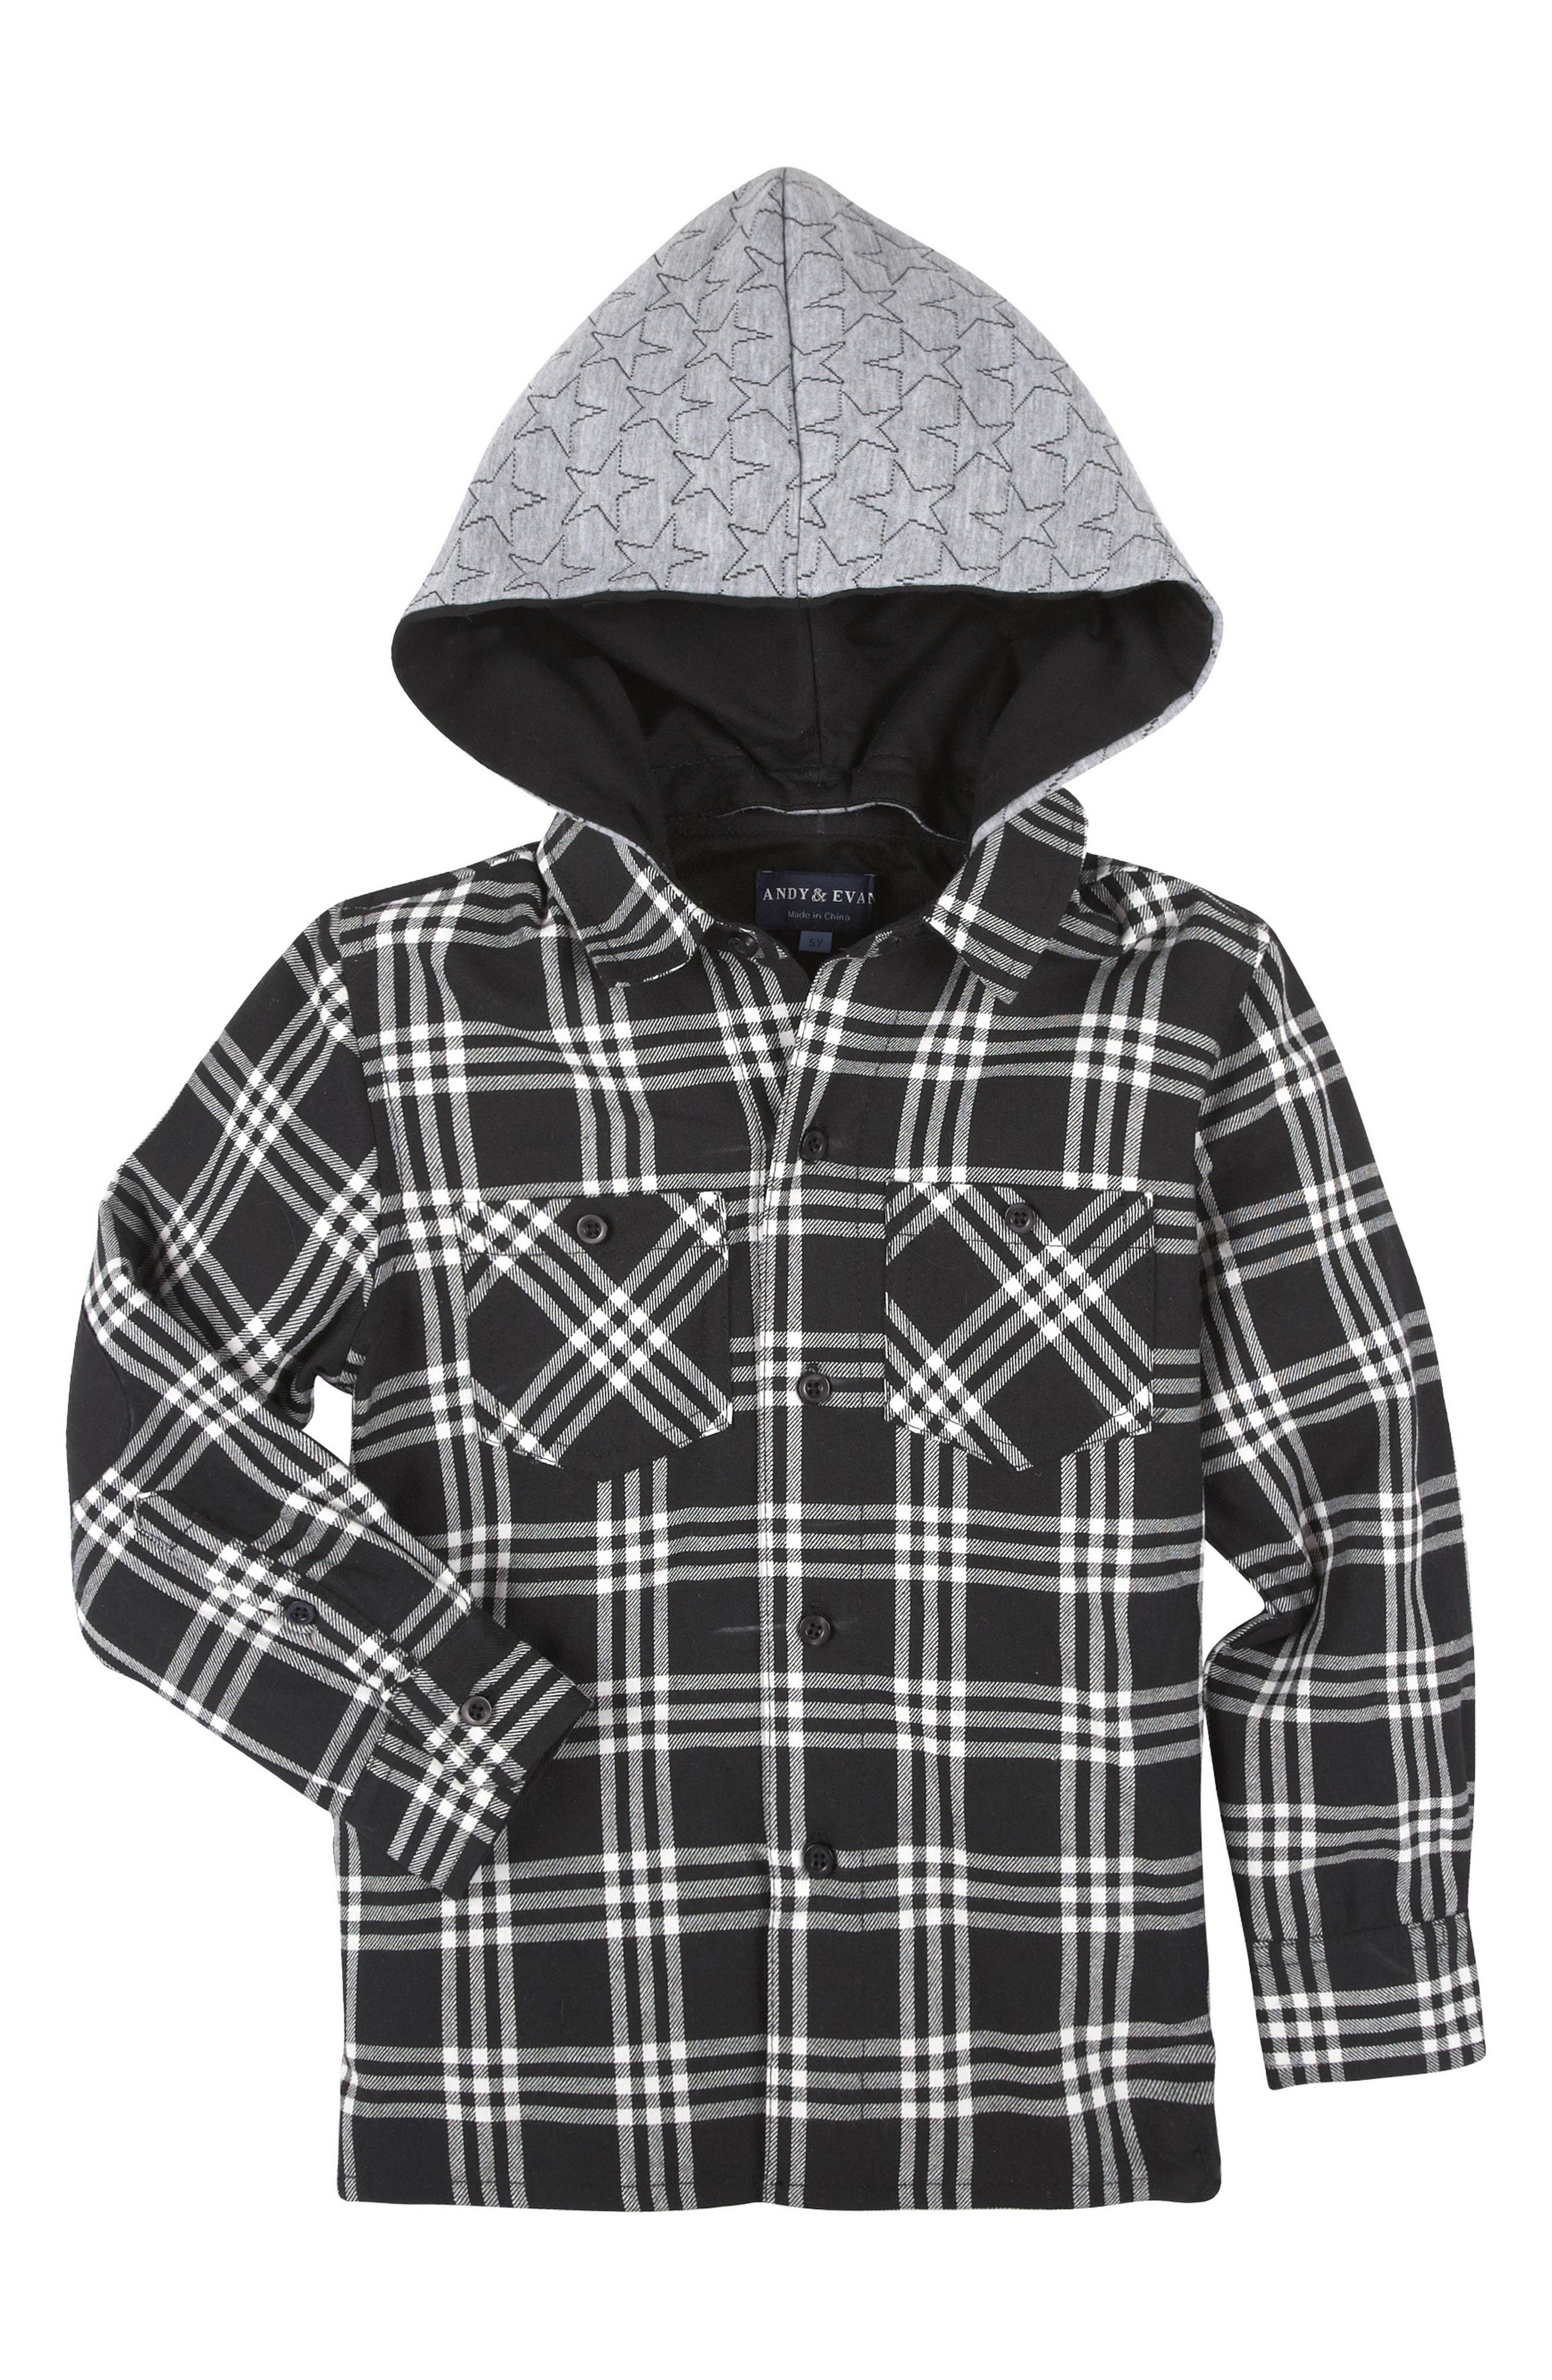 Main Image - Andy & Evan Hooded Flannel Shirt (Baby Boys)